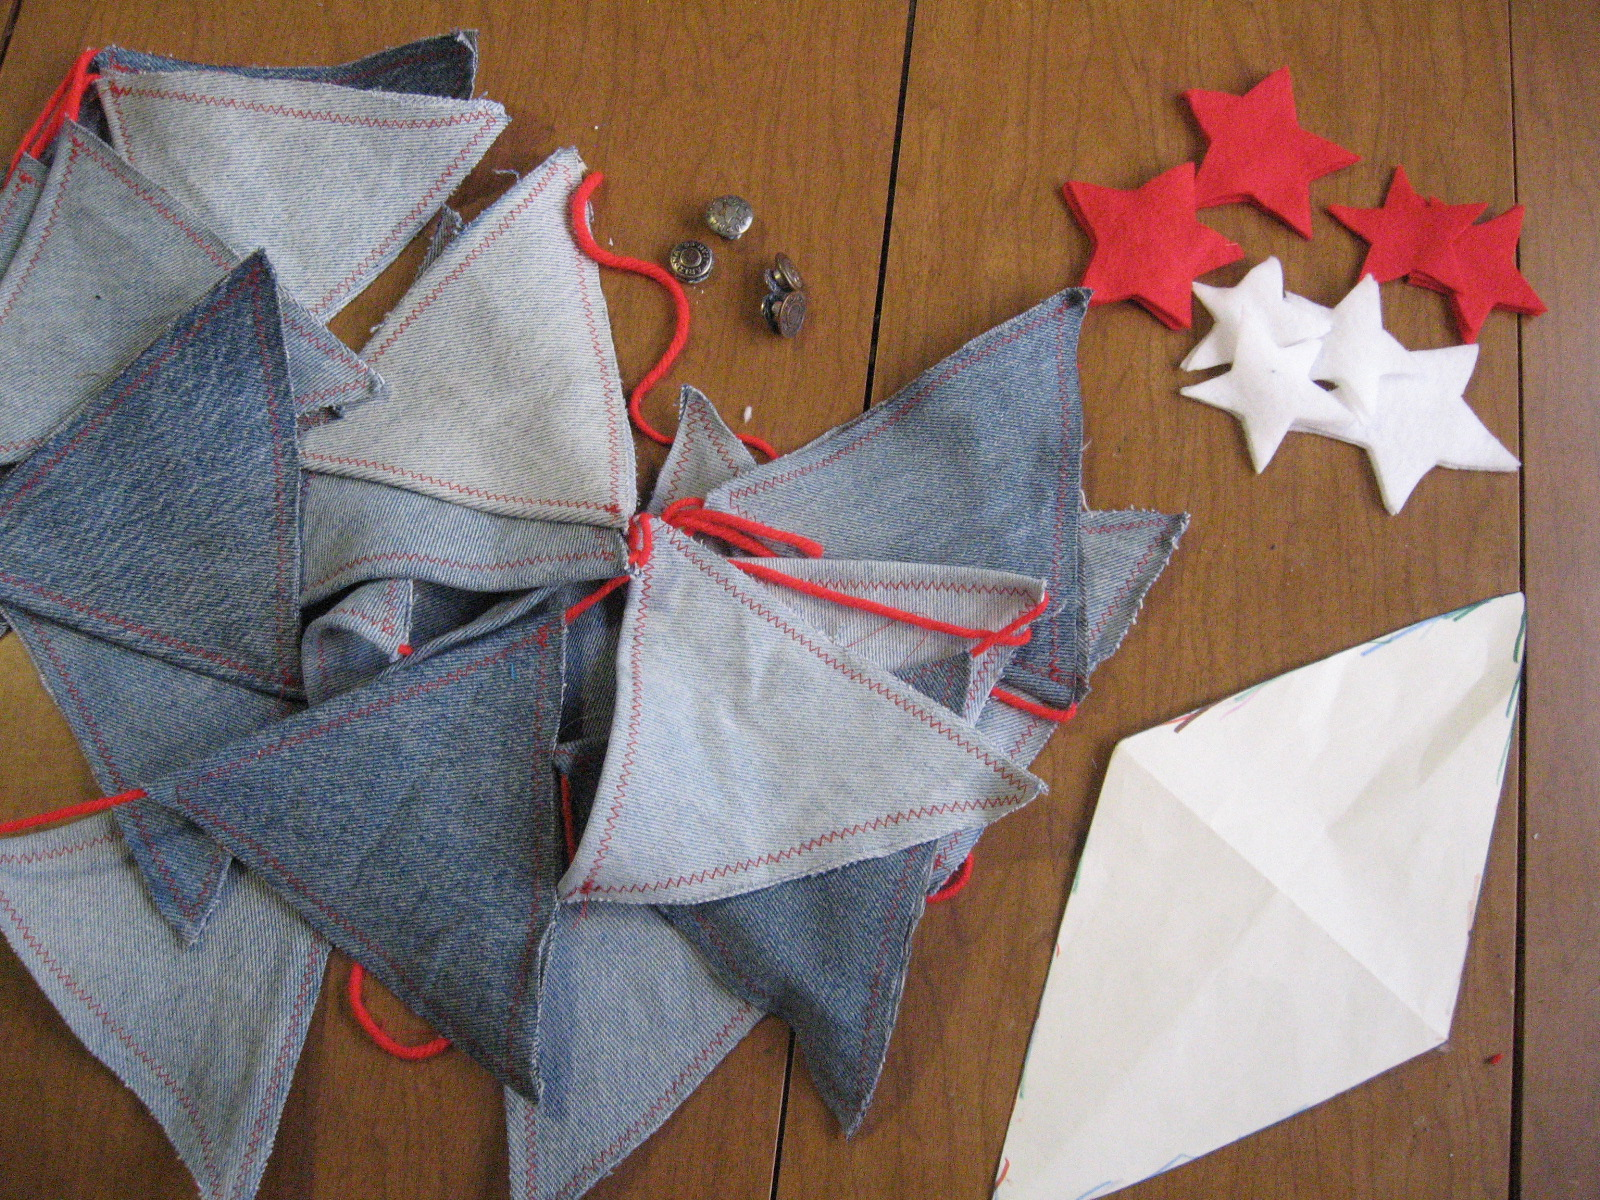 ... Into Reality When I Made Denim Bunting From Some Old Jeans. I Really  Like Patriotic Decorations And I Enjoyed Making This Fun Using Red, White  And Blue.